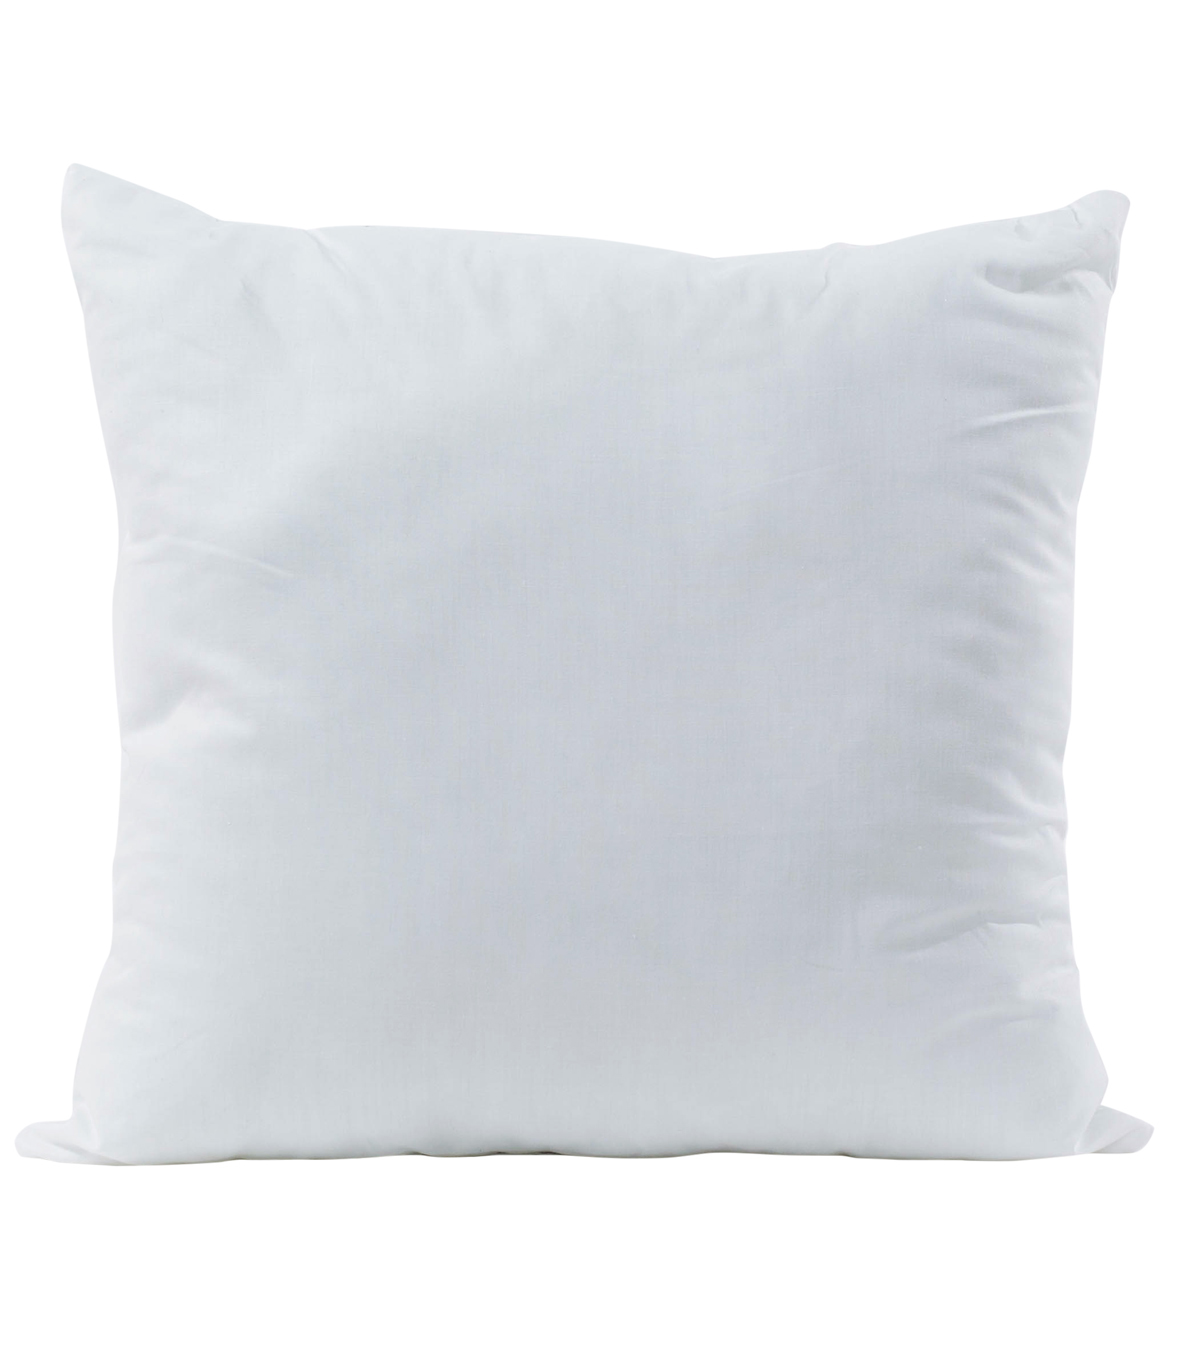 throws pillow insert collections products x scandis pillows